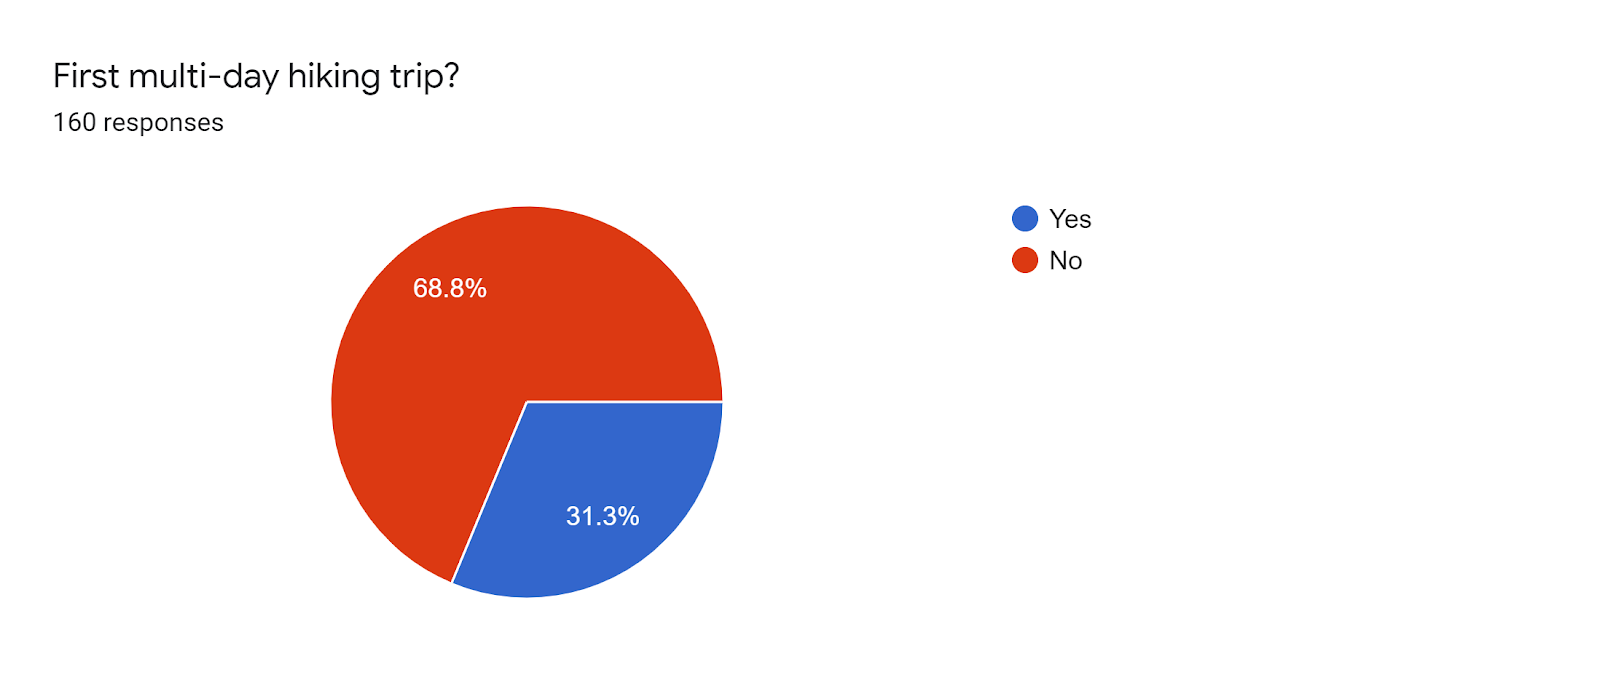 Forms response chart. Question title: First multi-day hiking trip?. Number of responses: 160 responses.